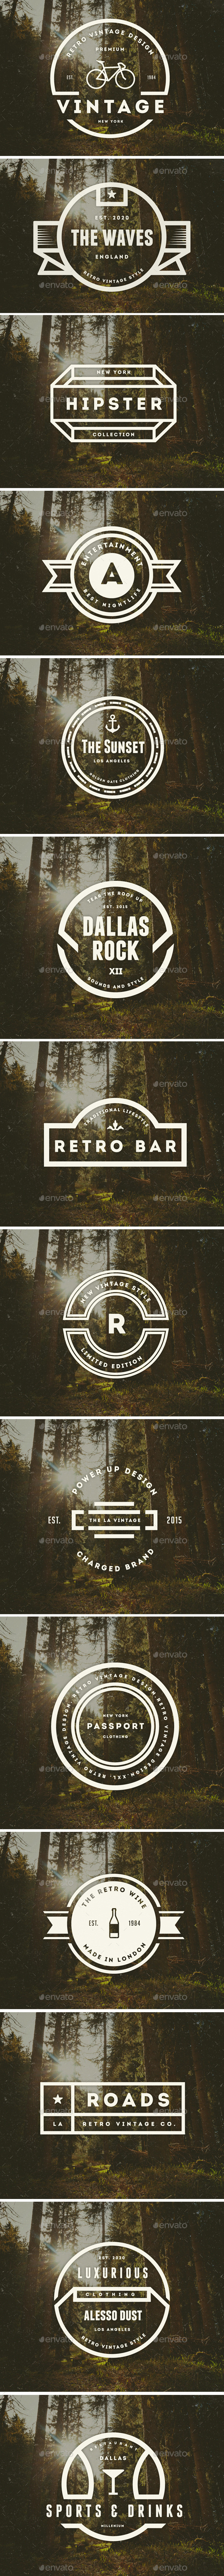 14 Vintage Logos Labels & Badges